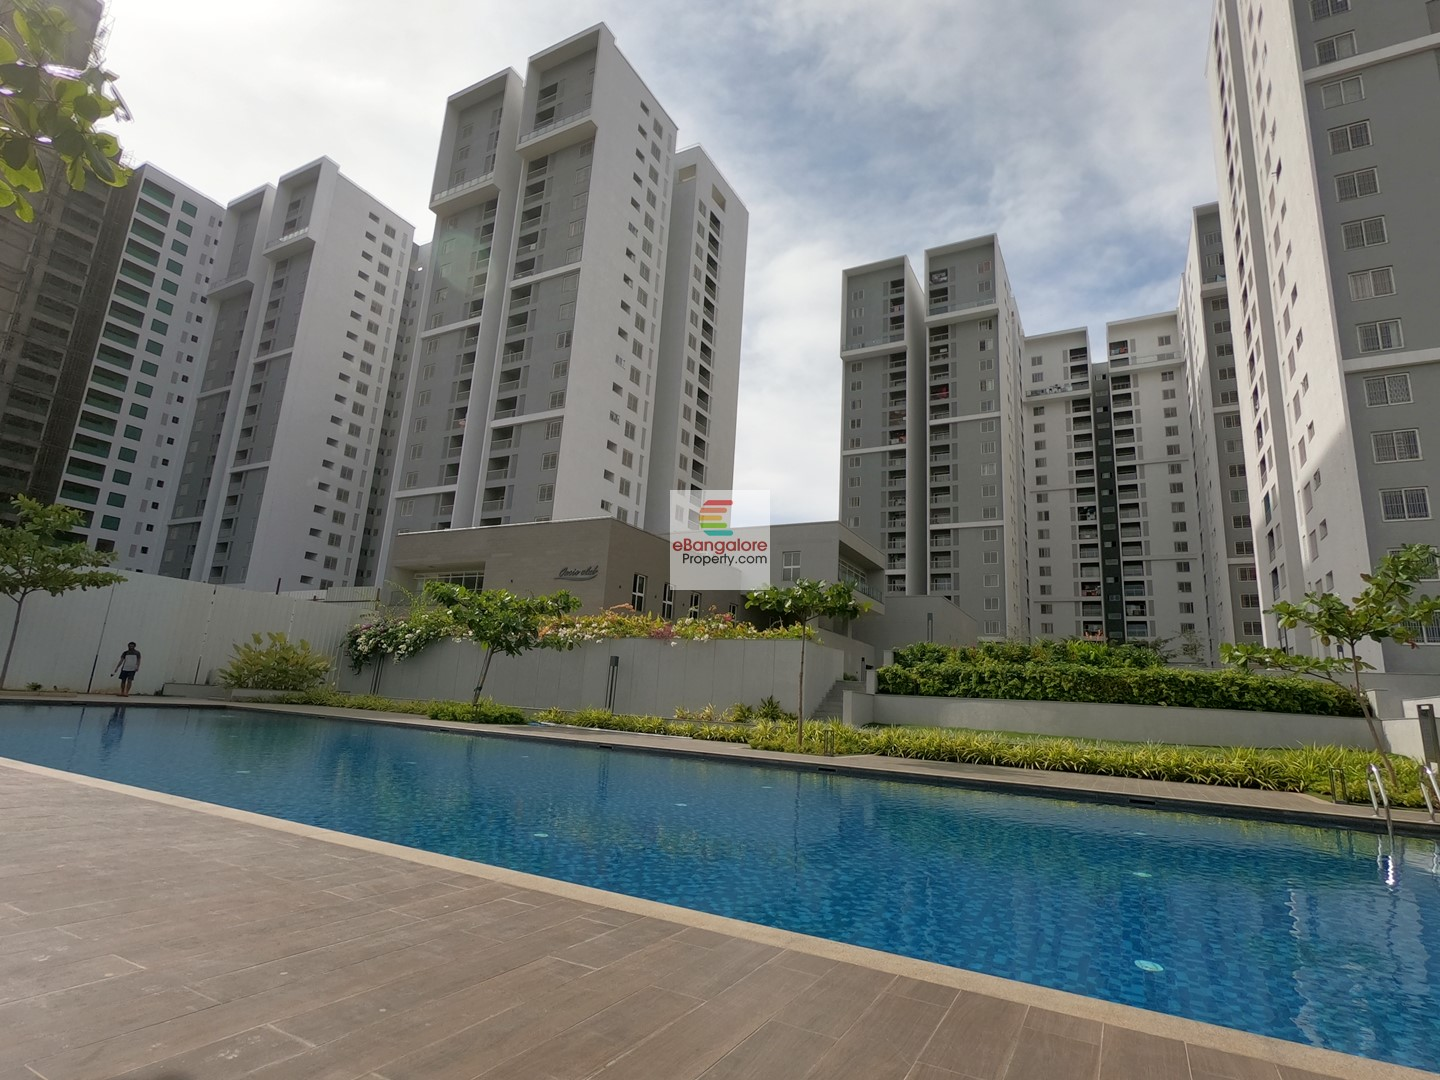 Sobha Silicon Oasis Hosa Road – 3BHK Premium New Flat For Sale – With World Class Amenities